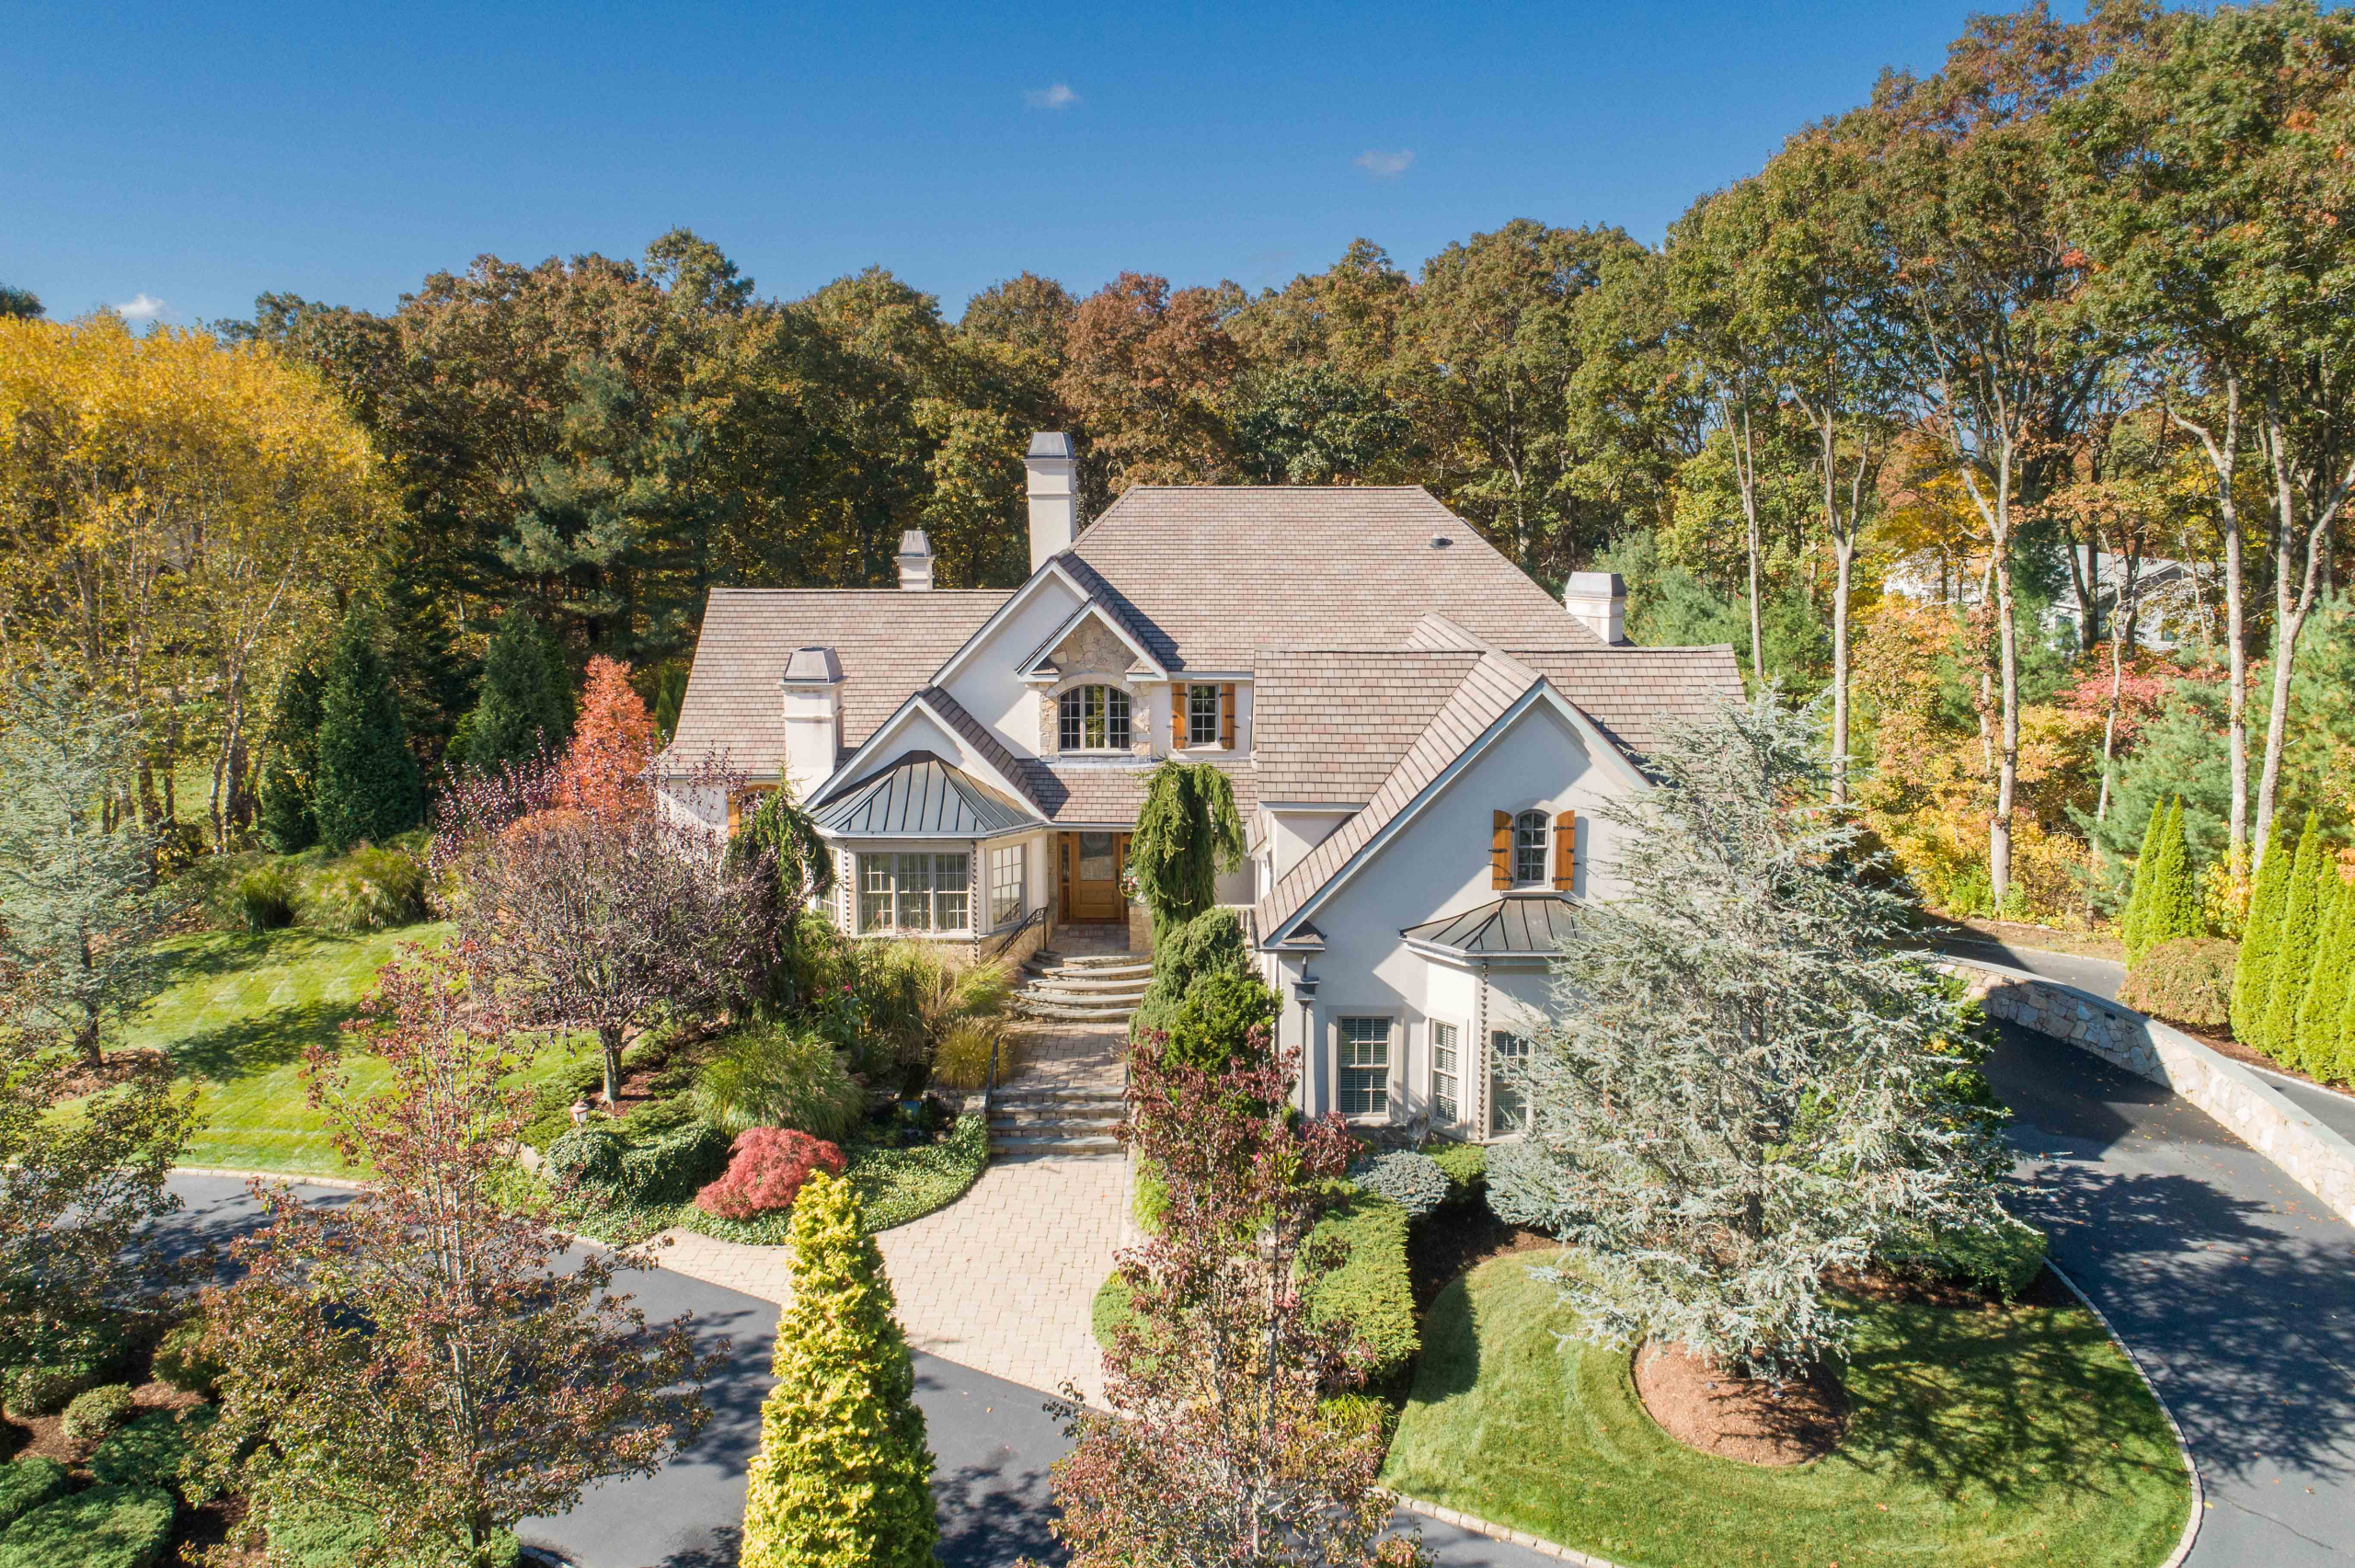 COWESETT HOME SELLS FOR RECORD BREAKING $1,400,000, MARKING HIGHEST NON-WATER AMENITY RESIDENTIAL SALE IN WARWICK EVER*